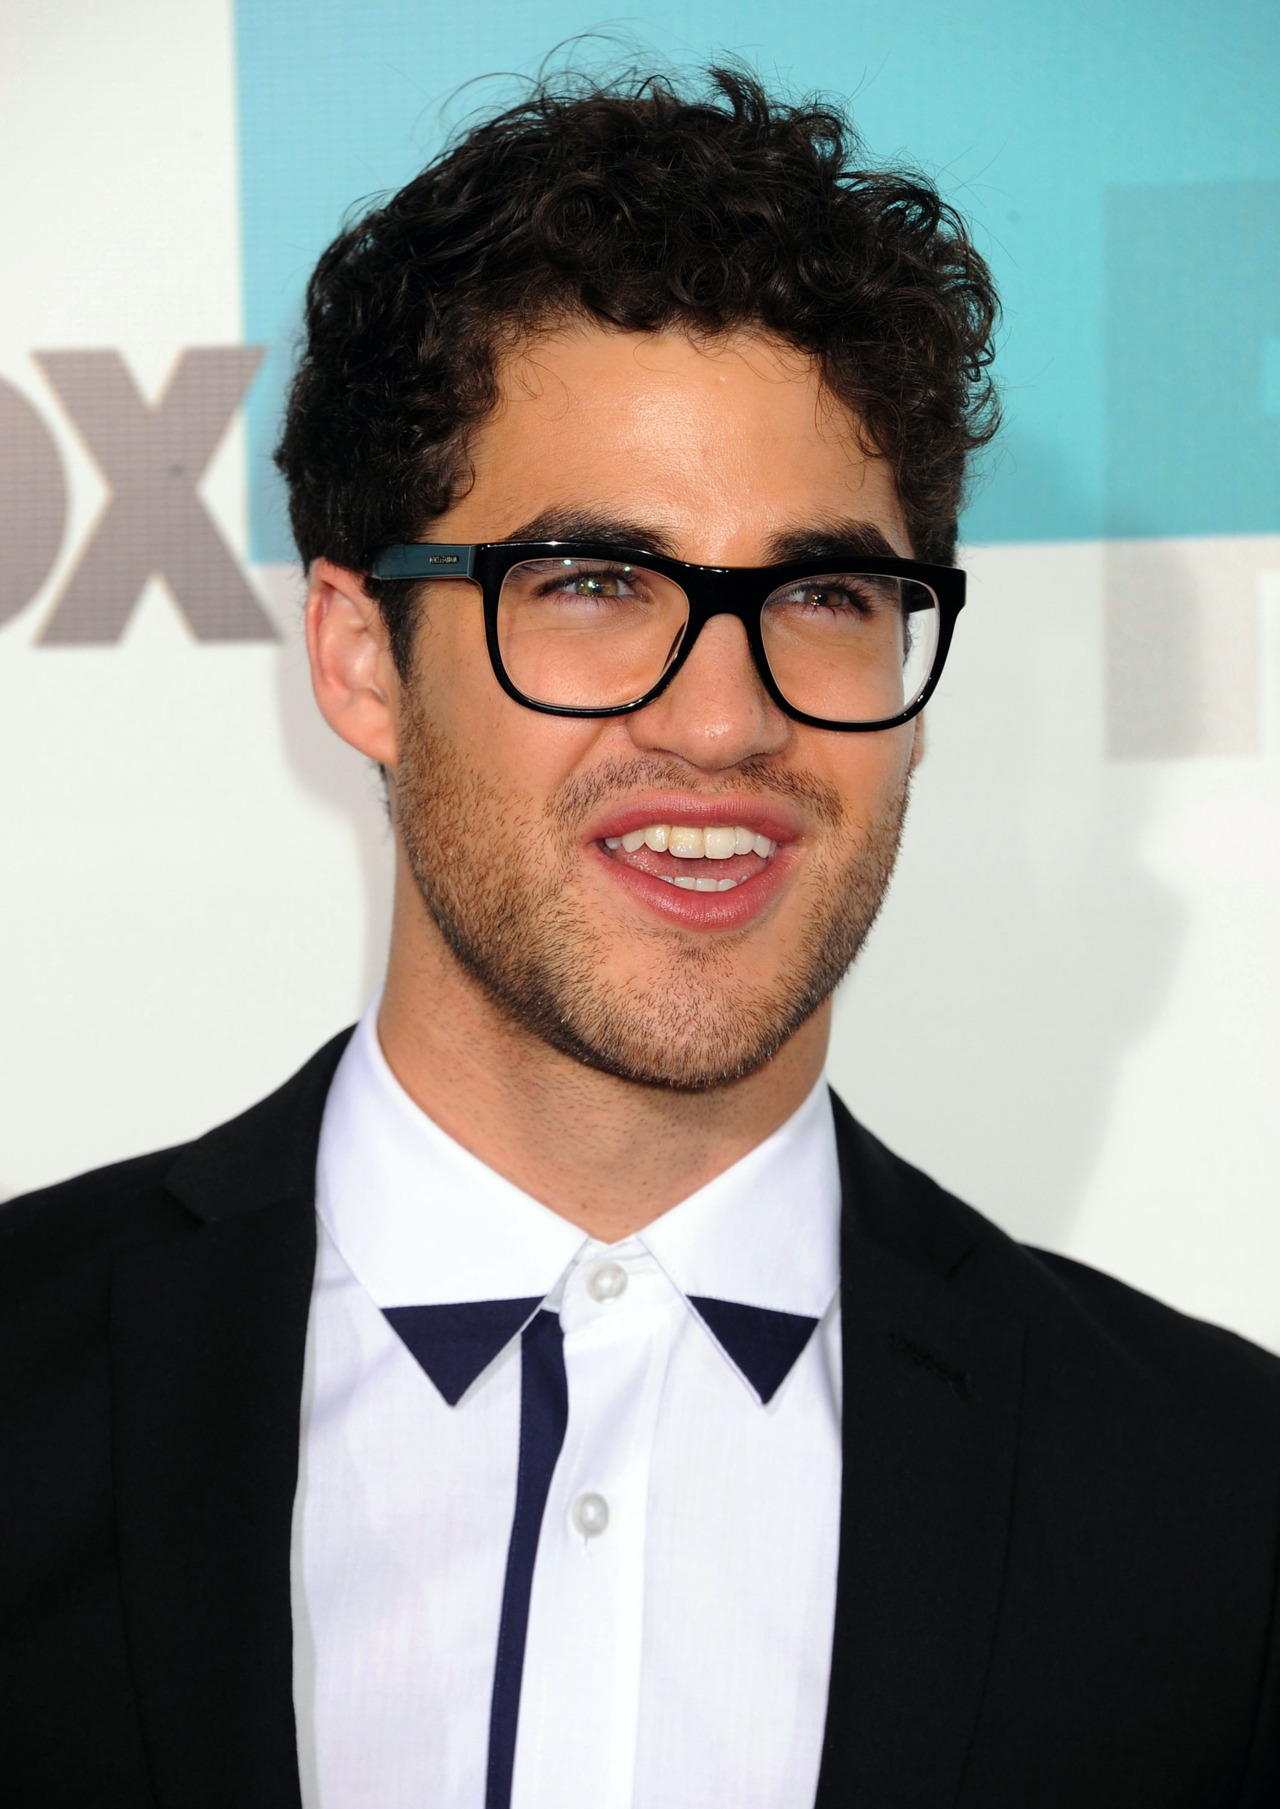 Darren fox upfronts 2012